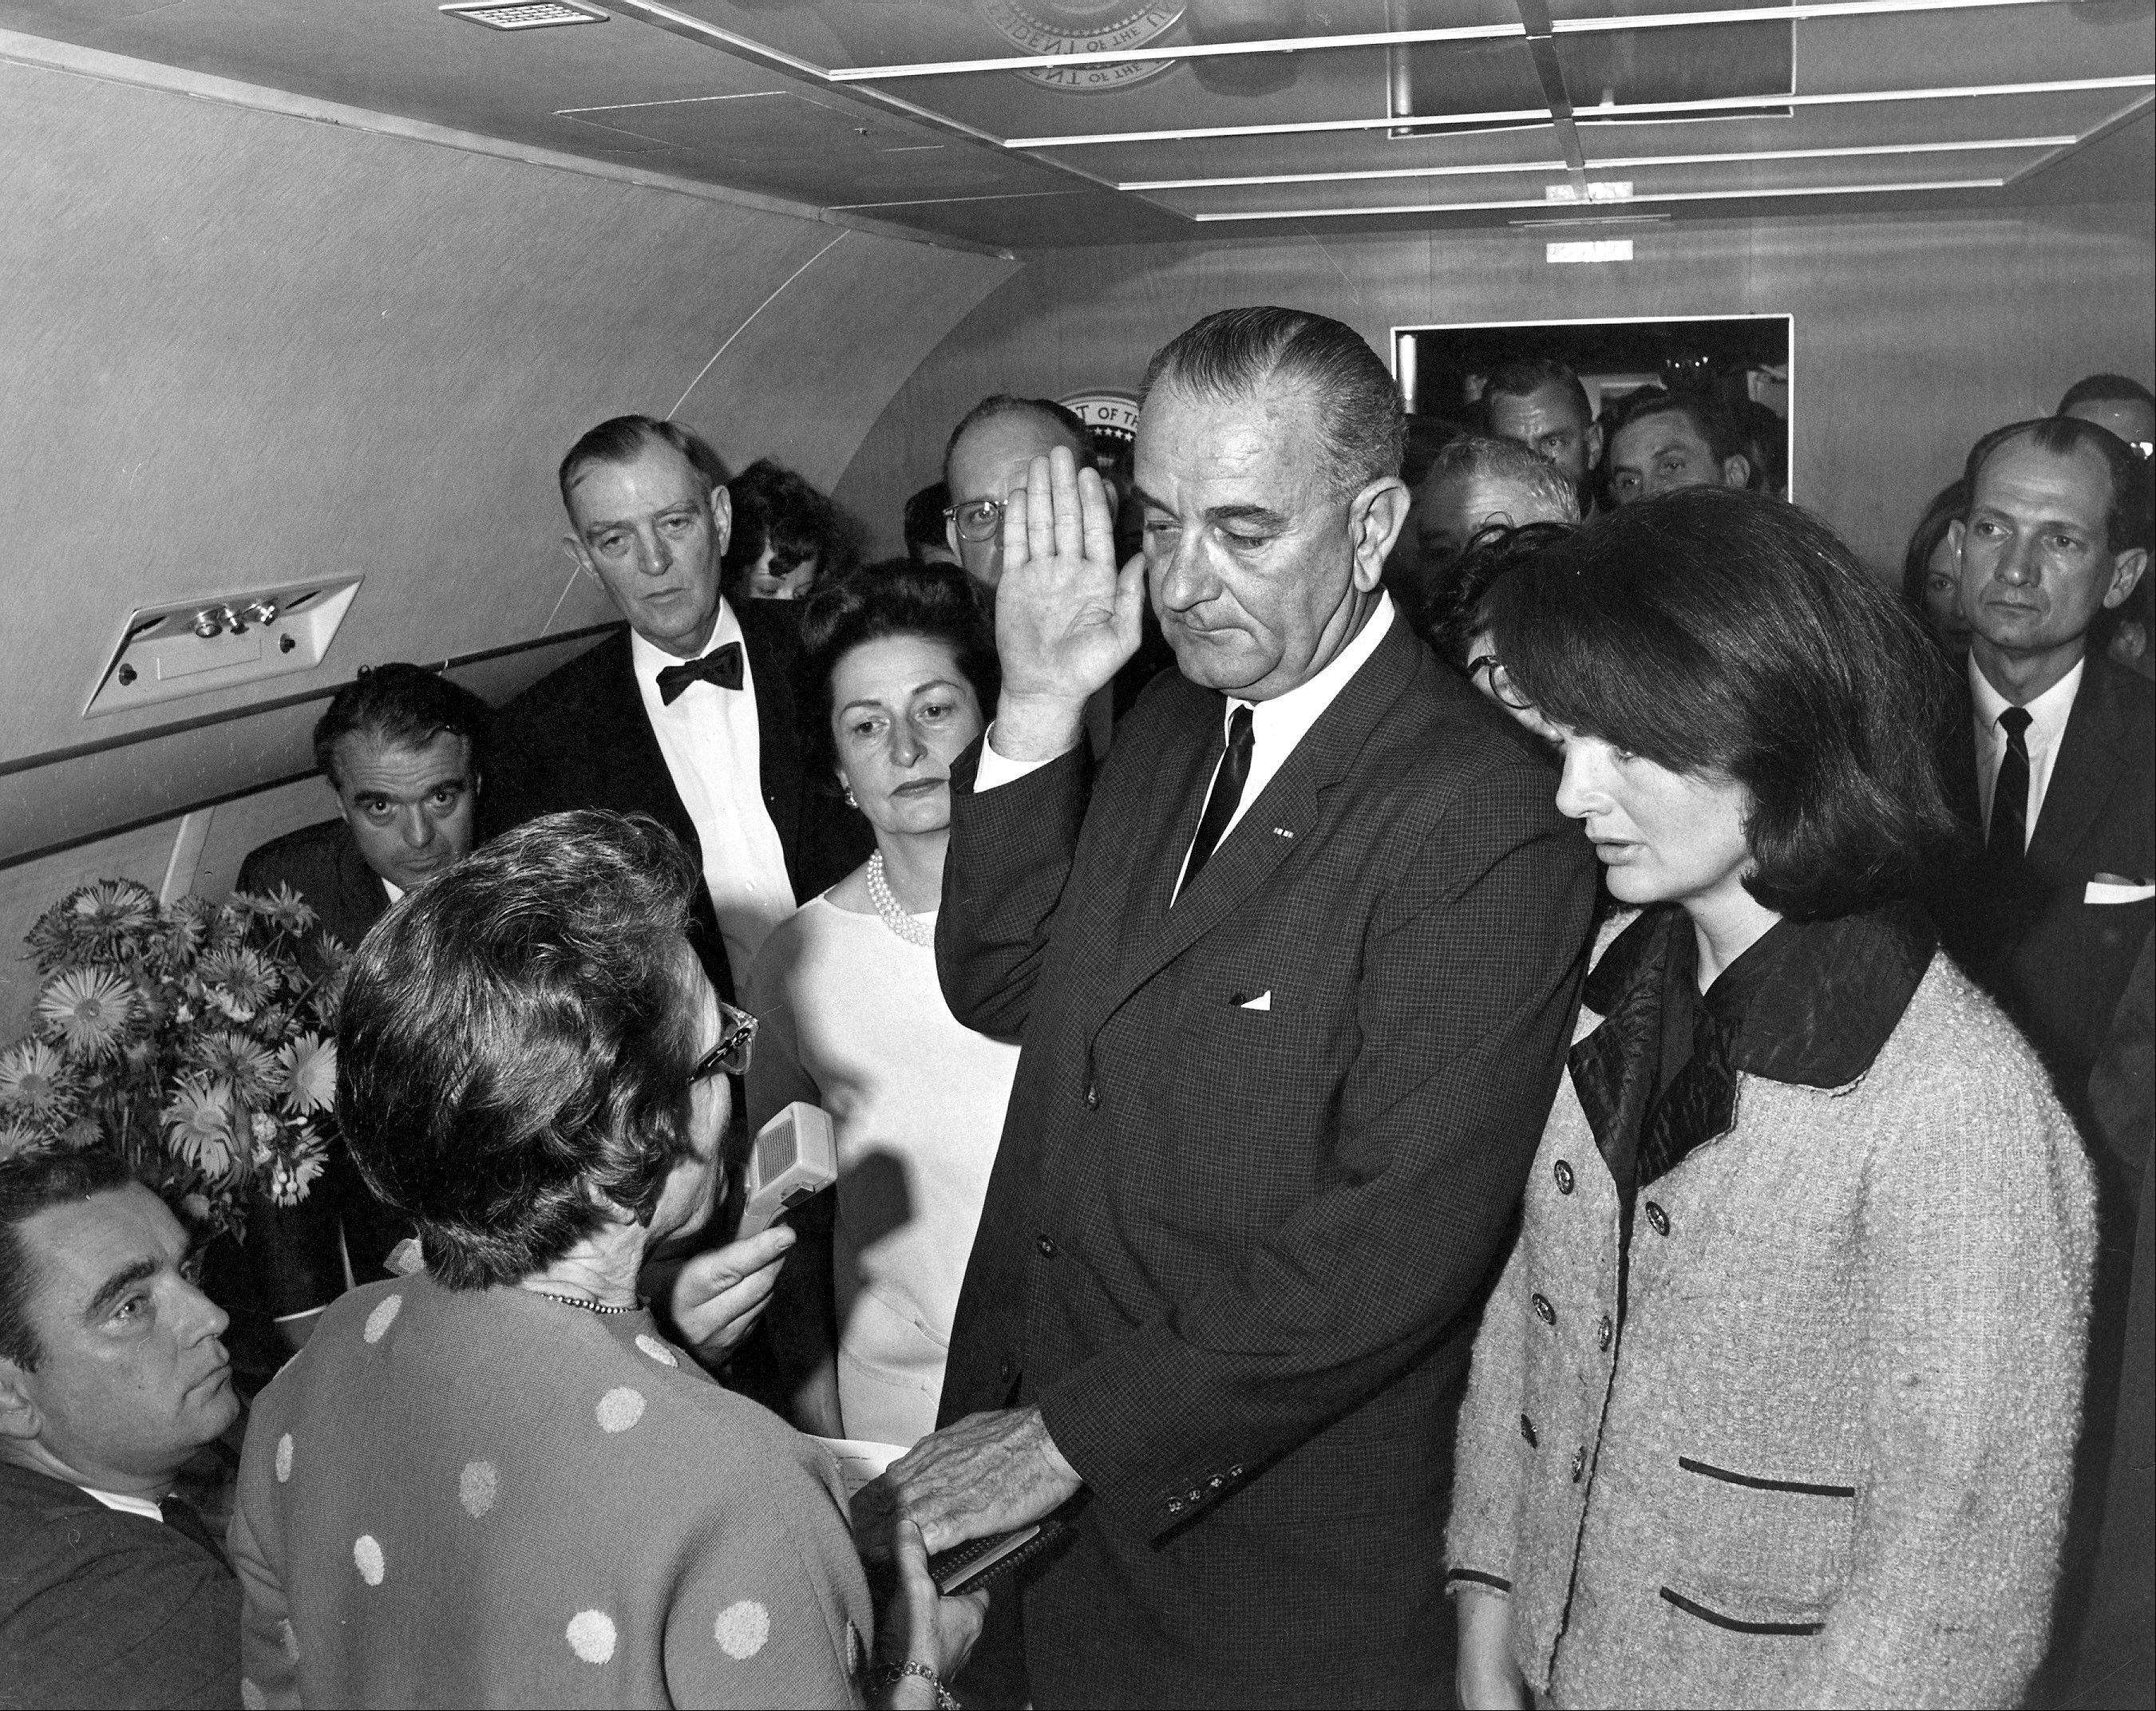 Lyndon B. Johnson is sworn in as president as Jacqueline Kennedy stands at his side in the cabin of the presidential plane on the ground at Love Field in Dallas.